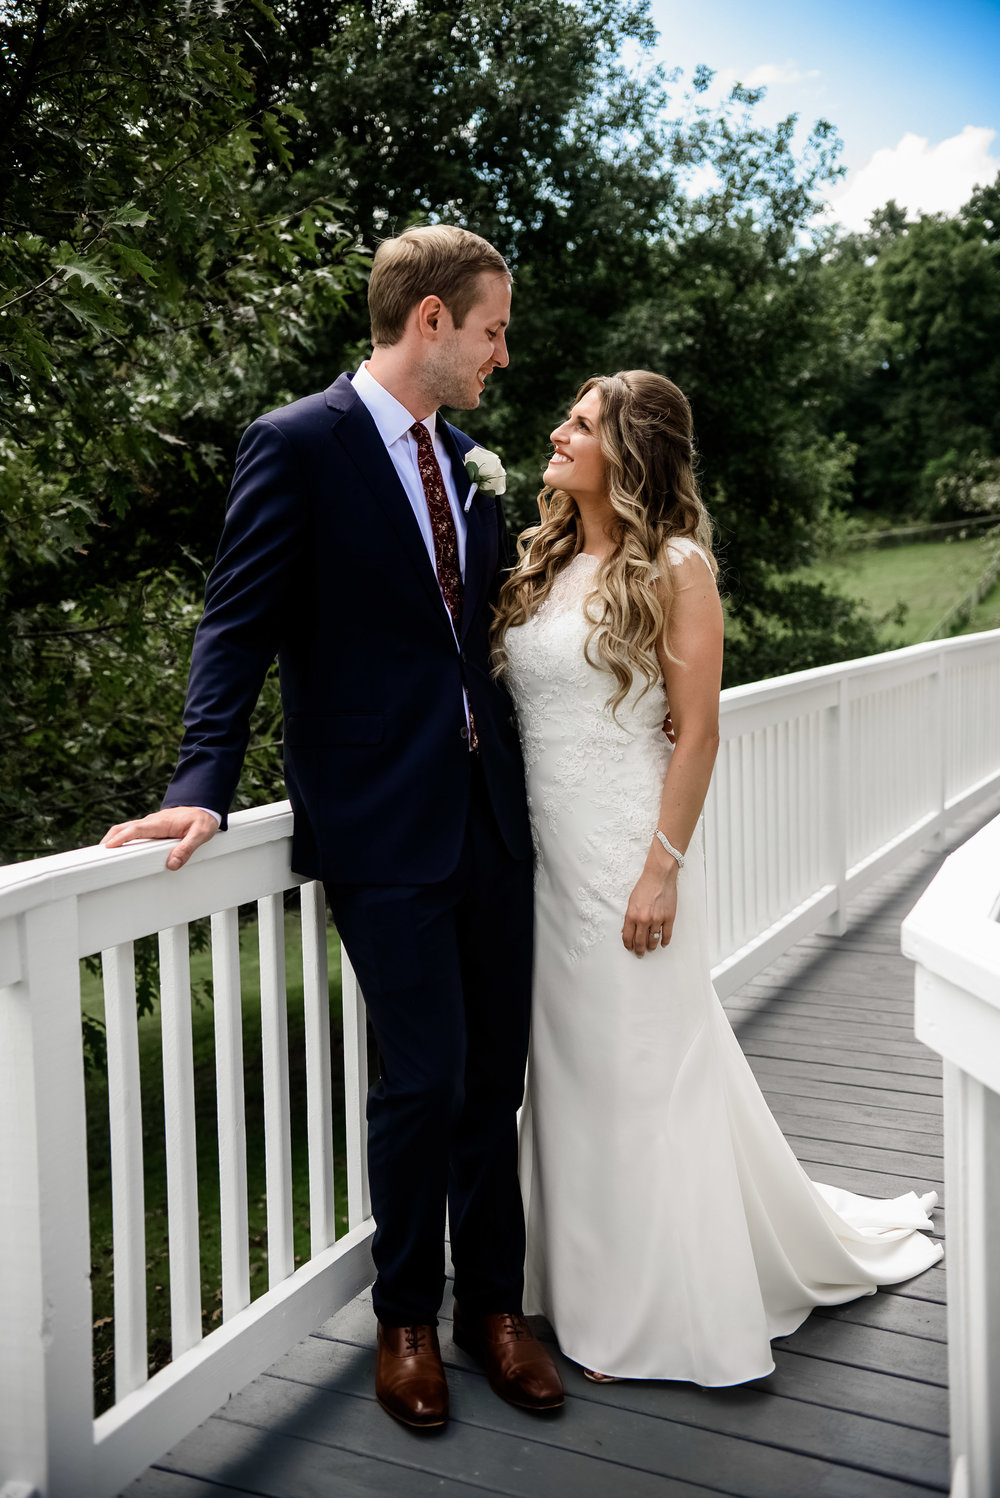 Bride and groom pose for outdoor wedding photos at Pittsburgh wedding planned by Exhale Events. Find more wedding inspiration at exhale-events.com!